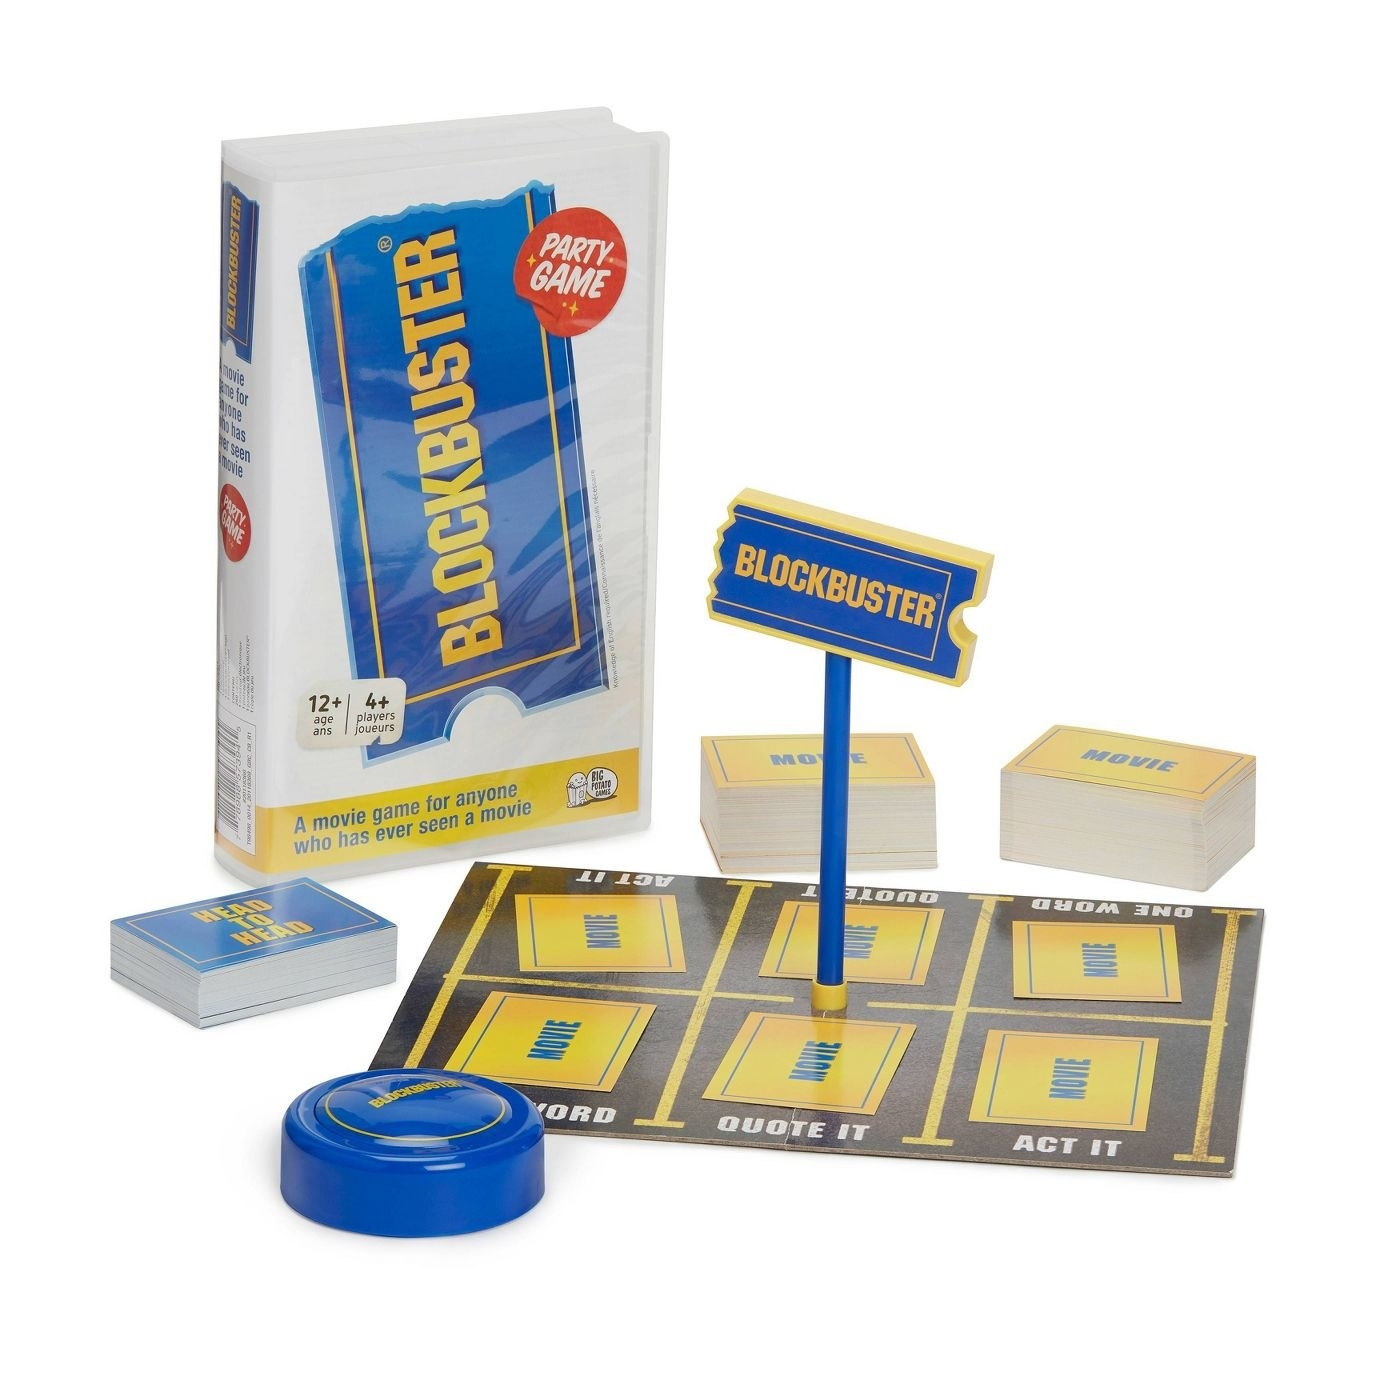 The Blockbuster game, which comes packaged in a case designed to look like a Blockbuster Video case, and which contains trivia/ charades cards and a timer for ganmeplay